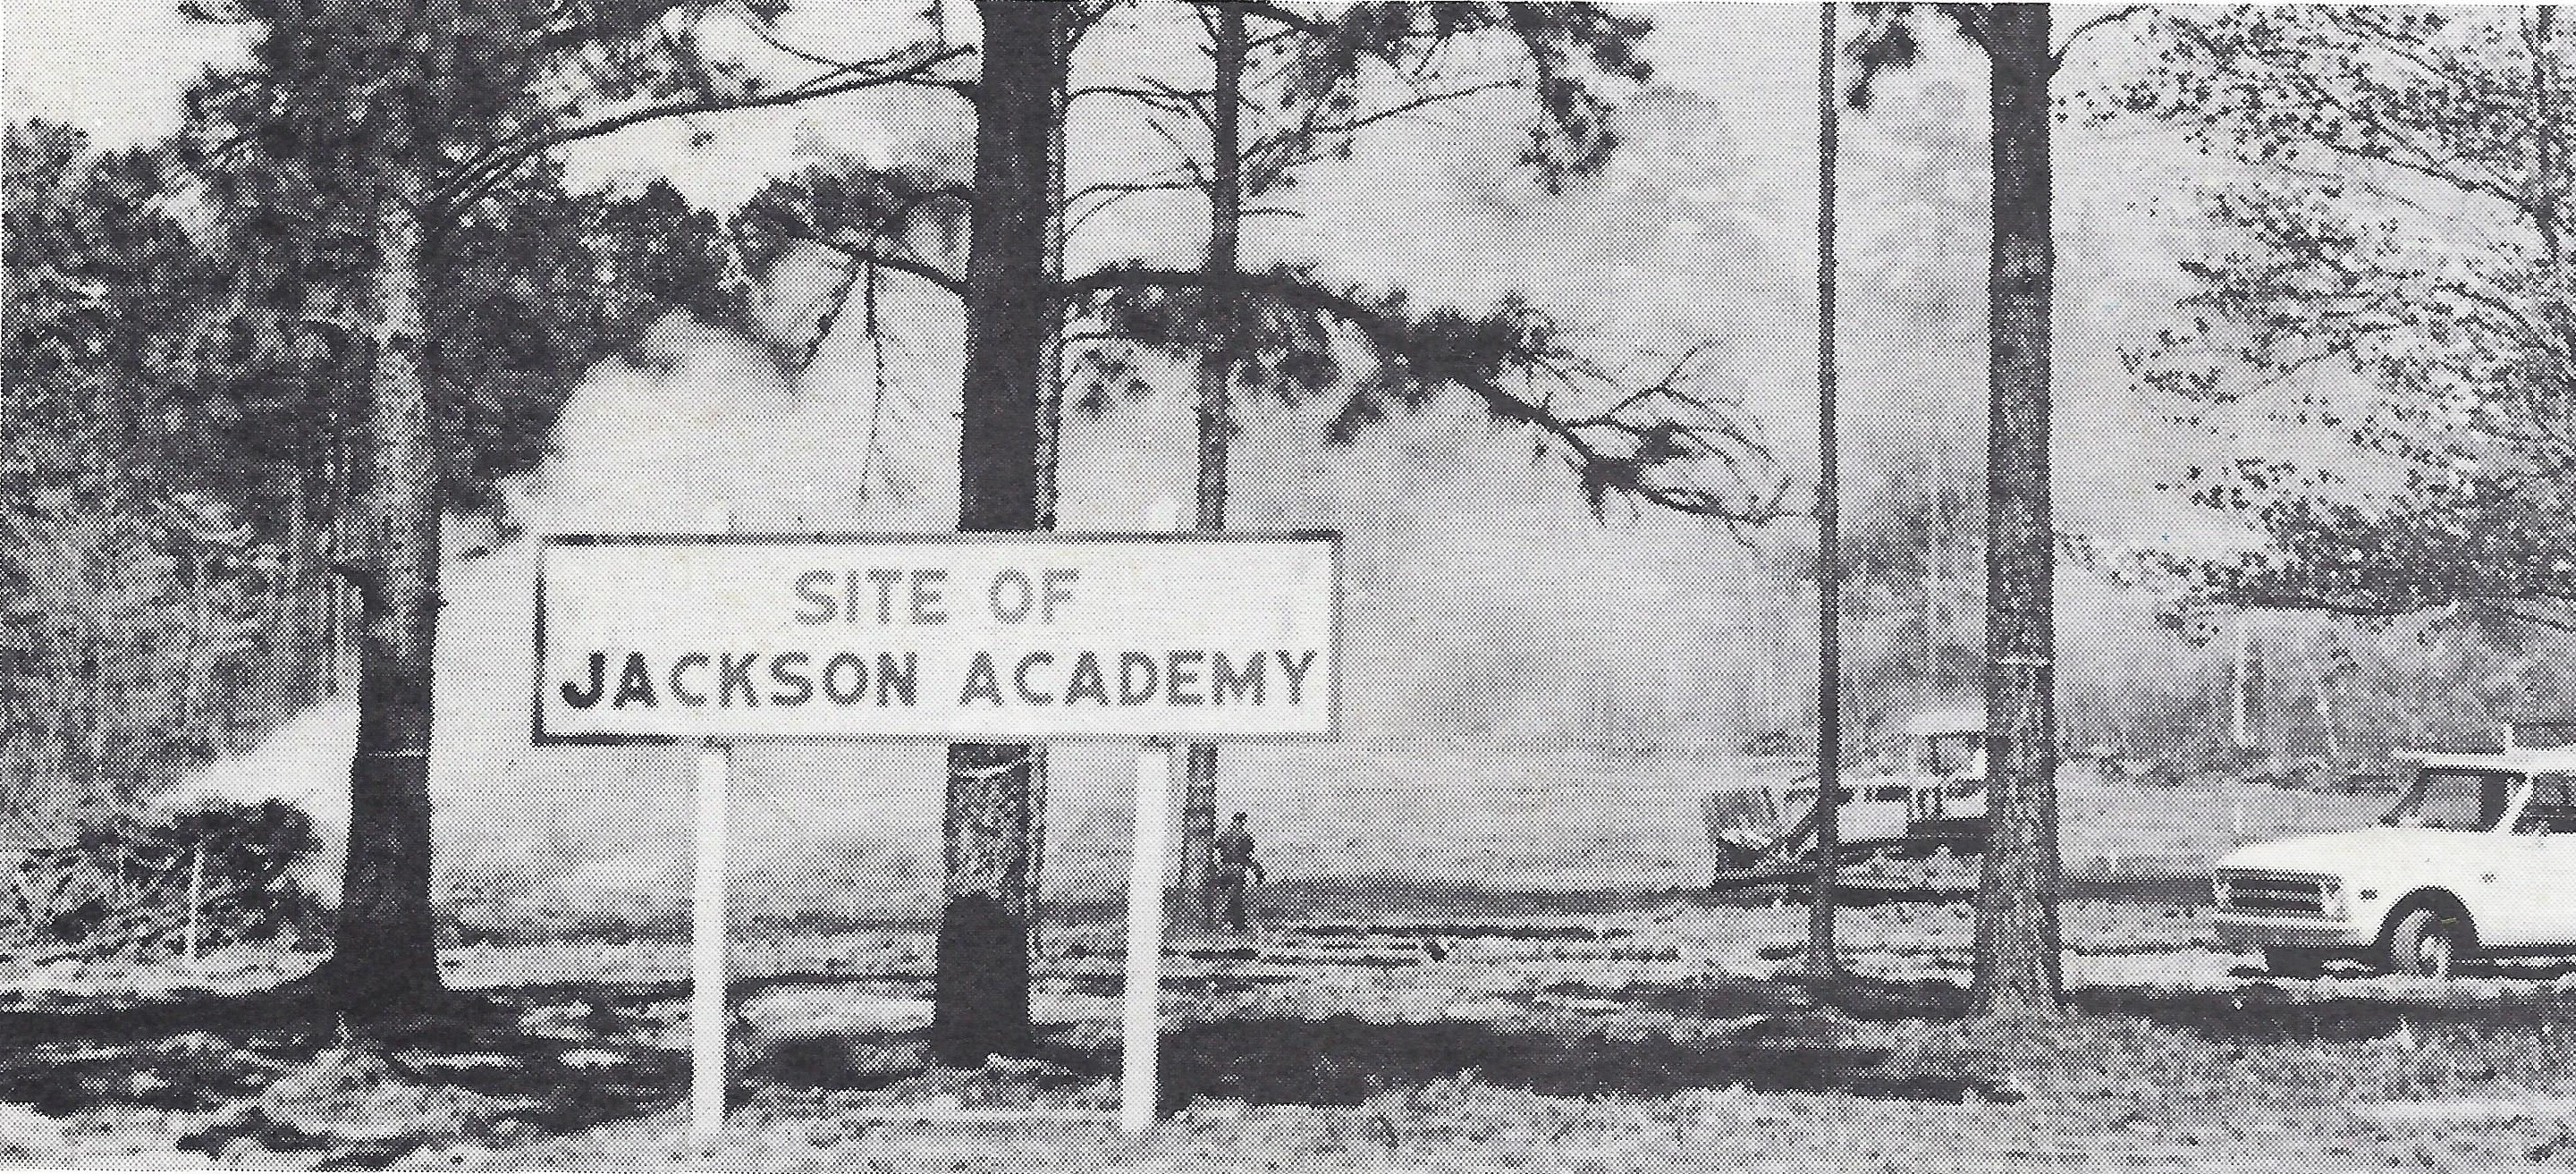 site of jackson academy historical